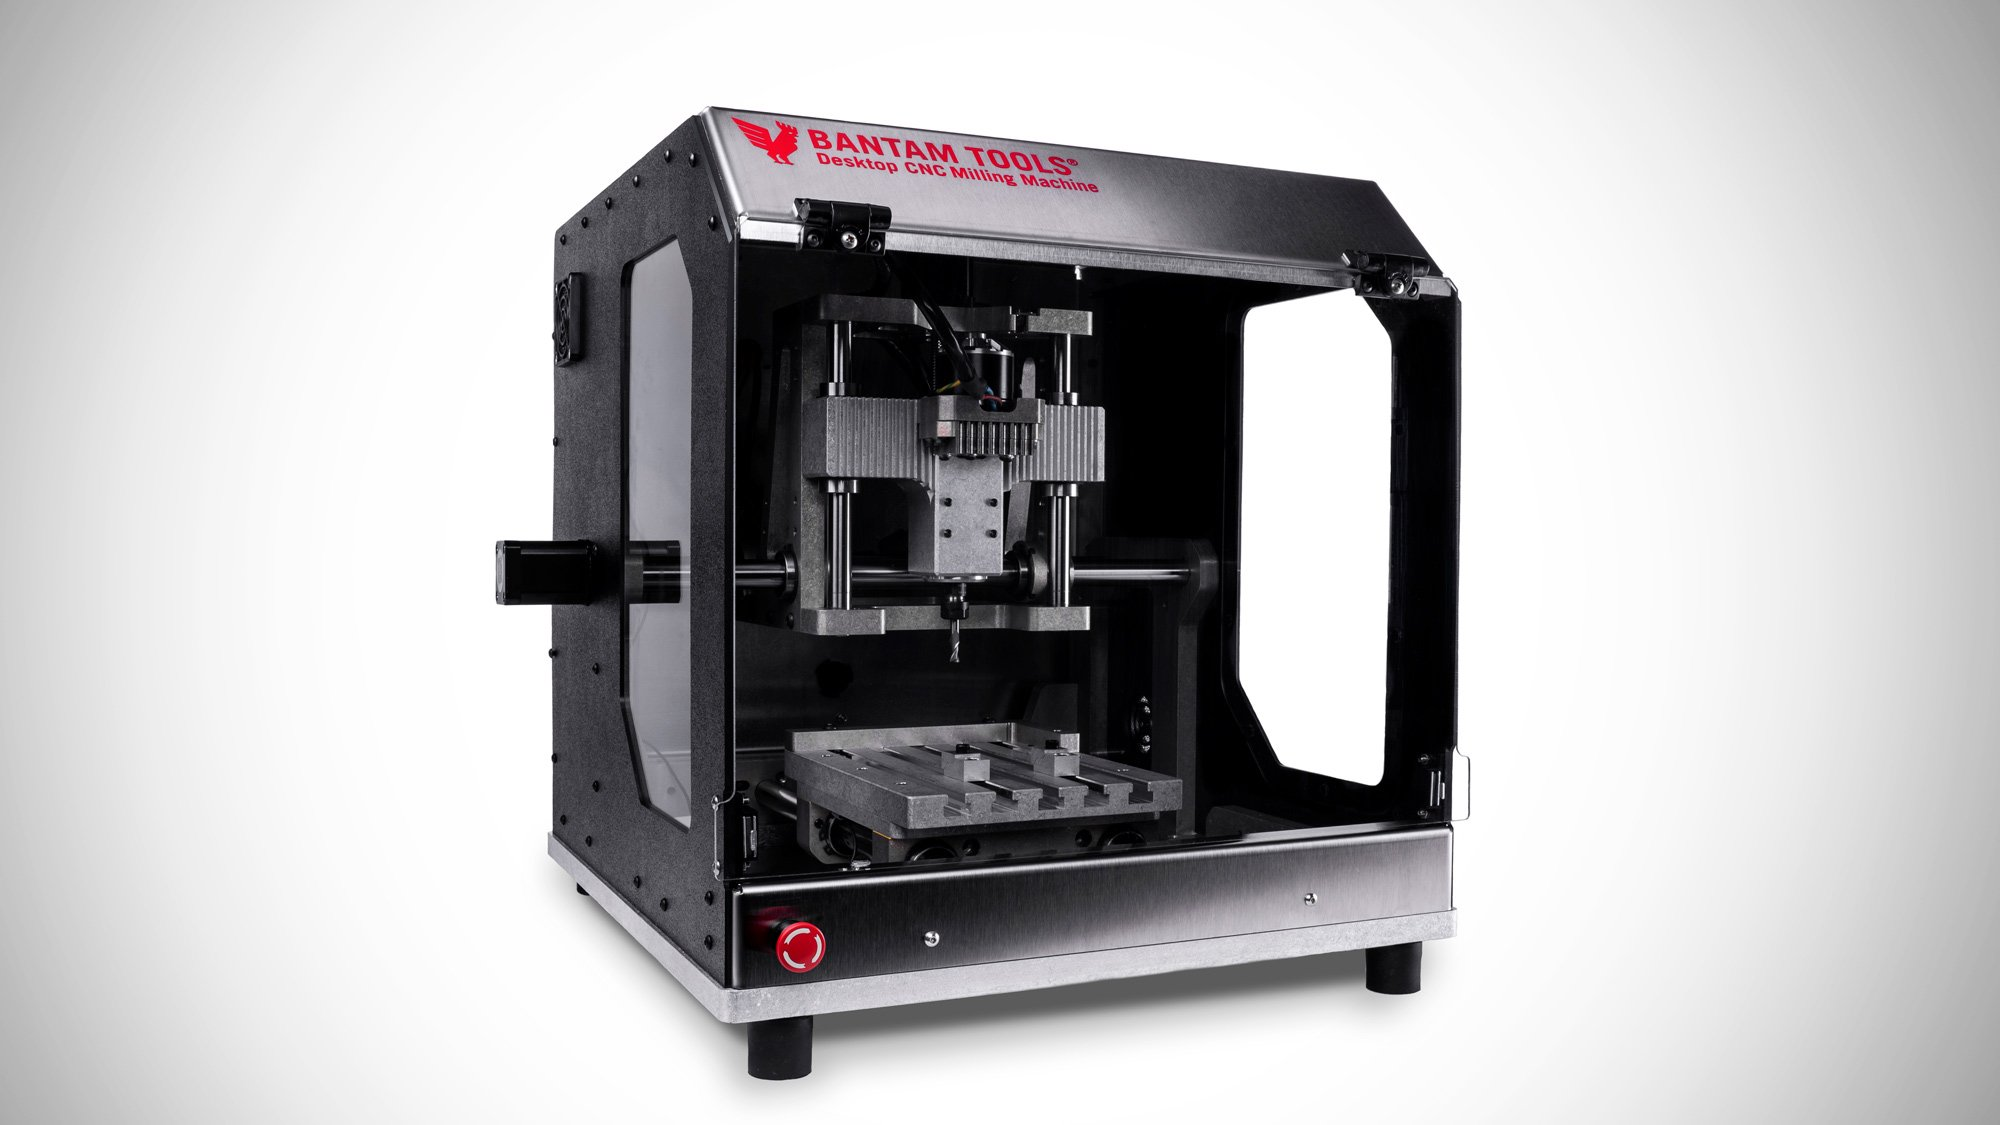 Bantam Tools Desktop CNC Milling Machine: Specs, Price, Release & Reviews | All3DP